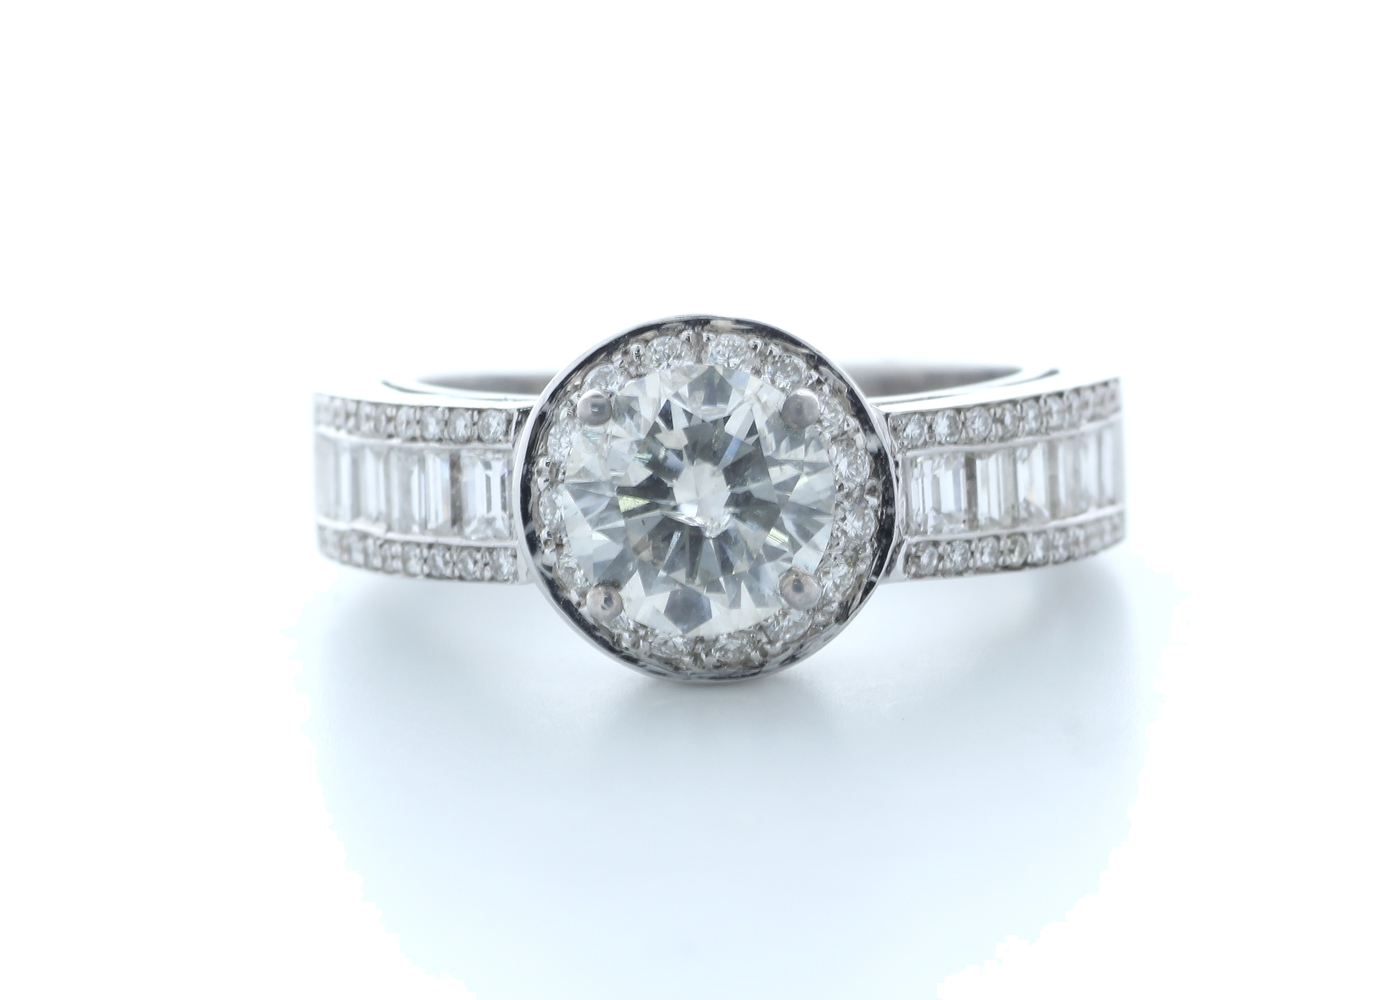 18ct White Gold Single Stone With Halo Setting Ring 2.62 (1.22) Carats